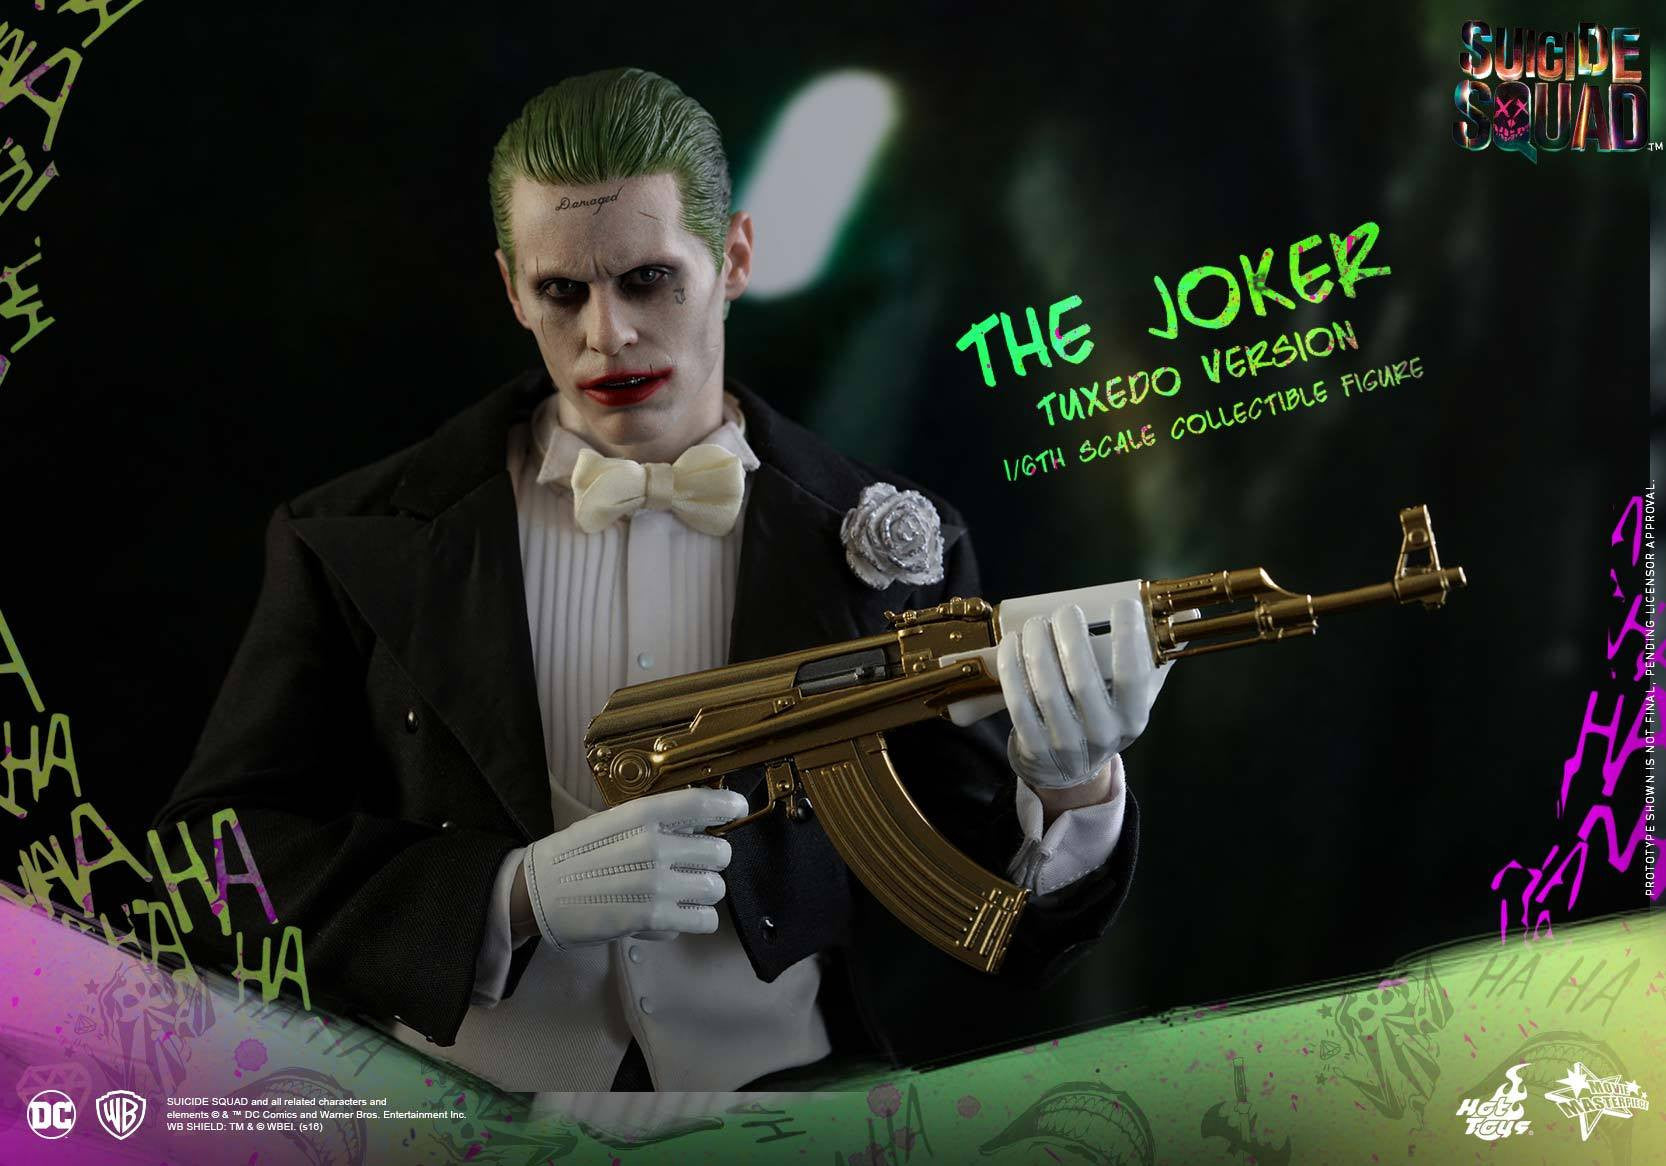 Hot Toys - MMS395 - Suicide Squad - The Joker (Tuxedo Version) - Marvelous Toys - 18